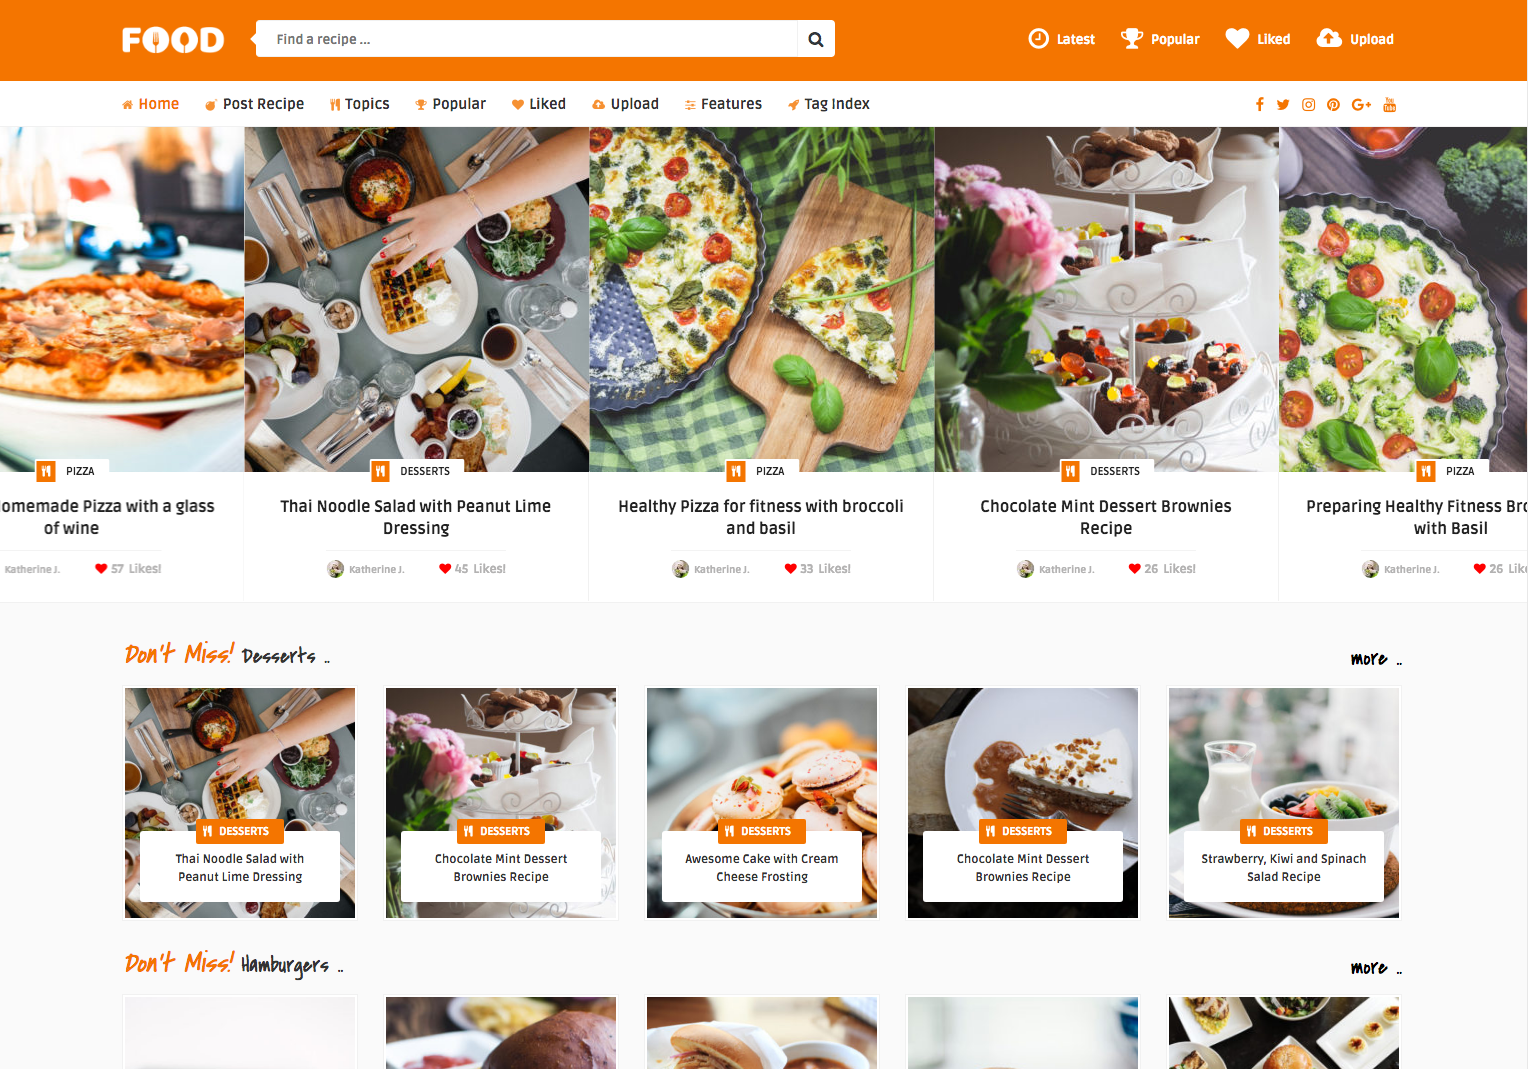 https://themeforest.net/item/tasty-food-recipes-food-blog-wordpress-theme/19331908?